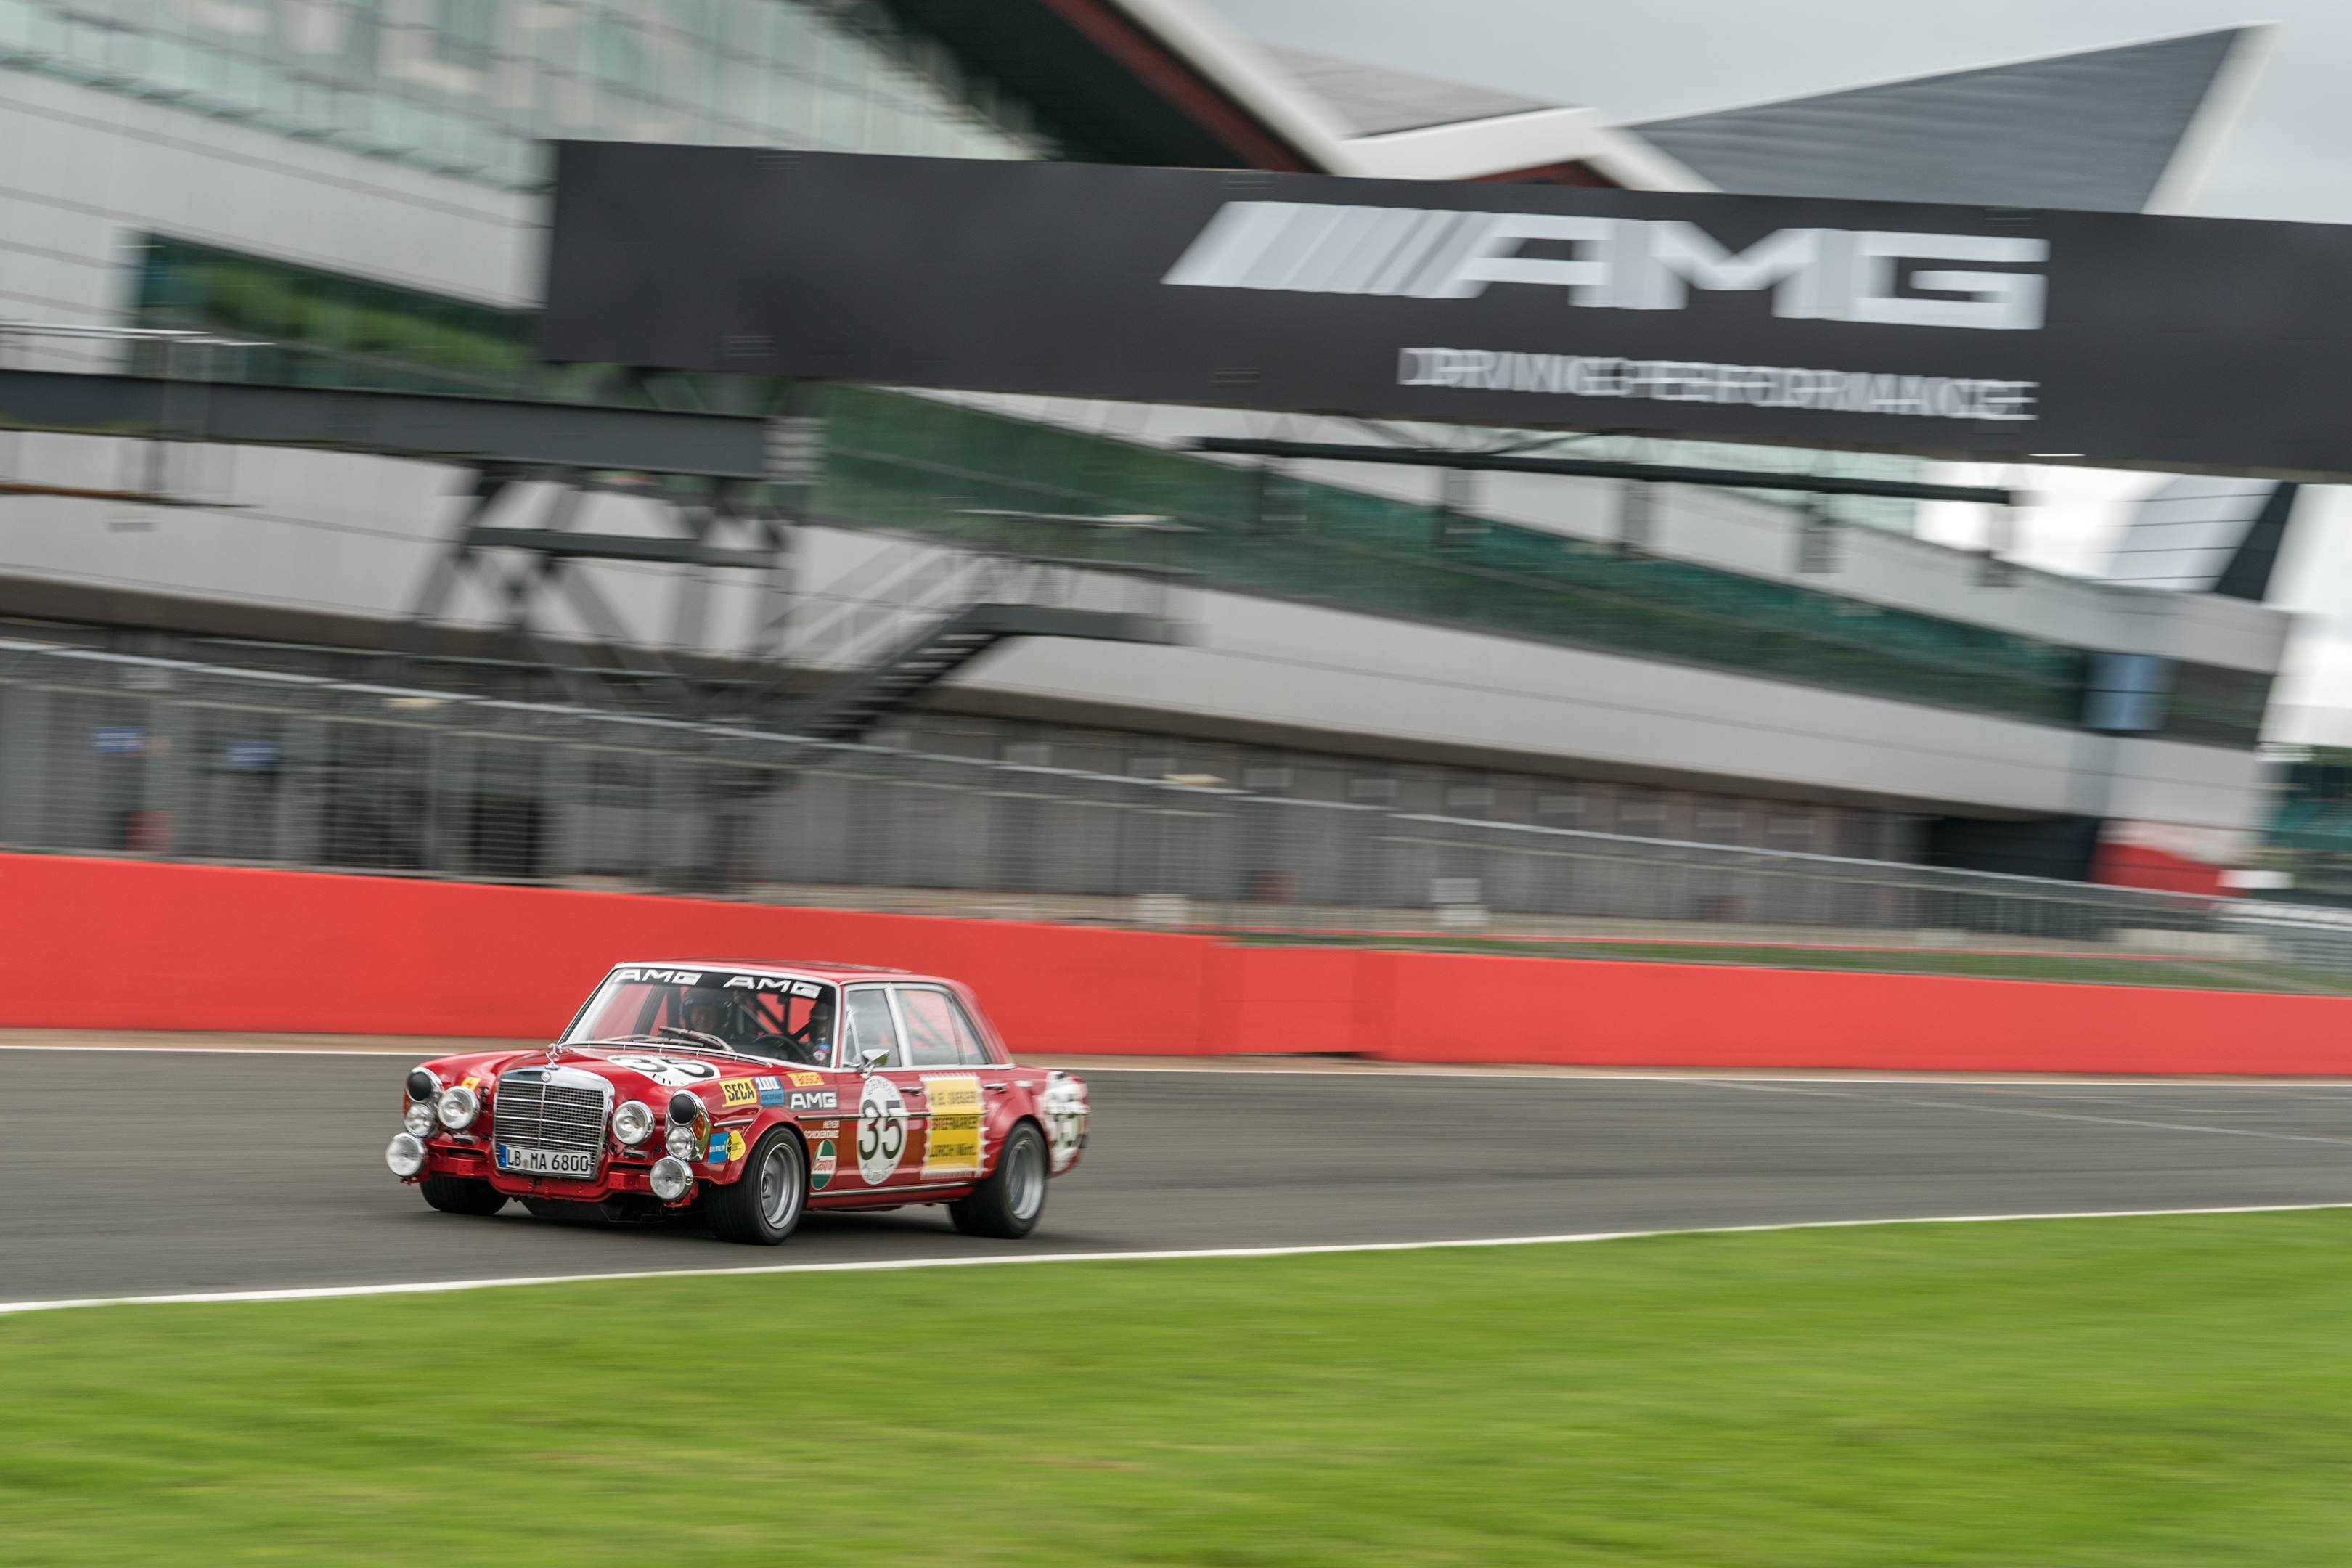 mercedes benz amg 300SEL 6.3 silverstone track